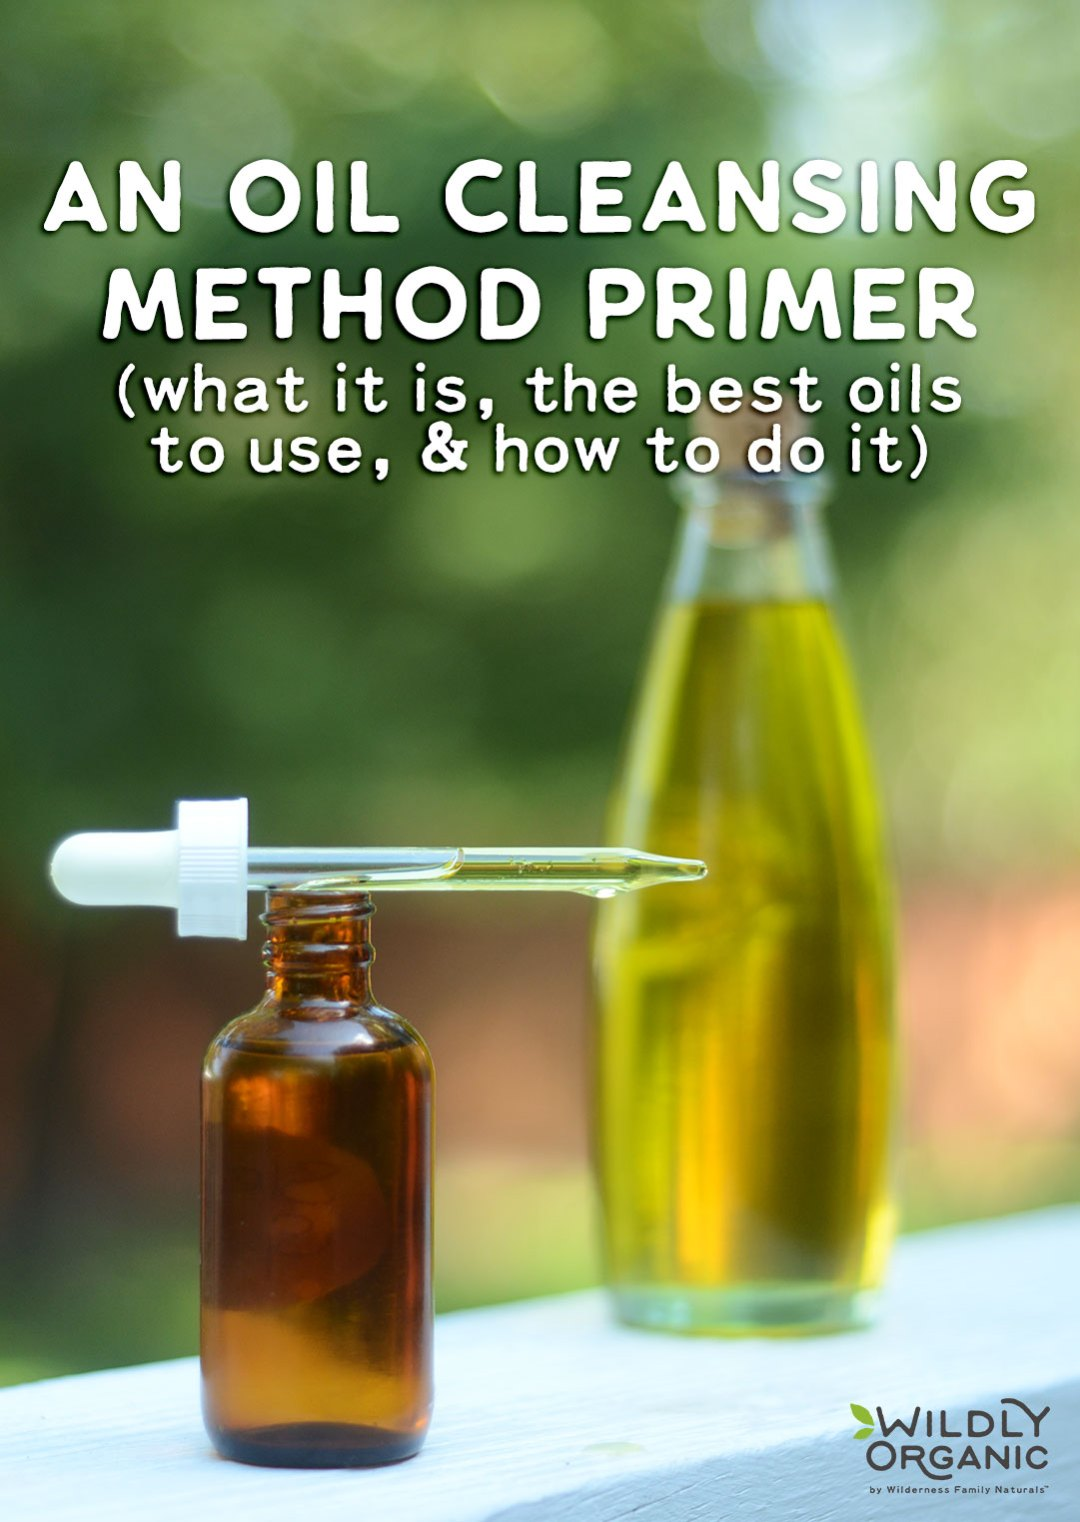 """An Oil Cleansing Method Primer (what it is, the best oils to use, & how to do it!)   Suitable for all skin types, the Oil Cleansing Method is a simple and effective way to clean skin without harsh chemicals or soaps. Here's an Oil Cleansing Method Primer - learn how to """"wash"""" your face with oil for super soft, glowing skin!   WildlyOrganic.com"""